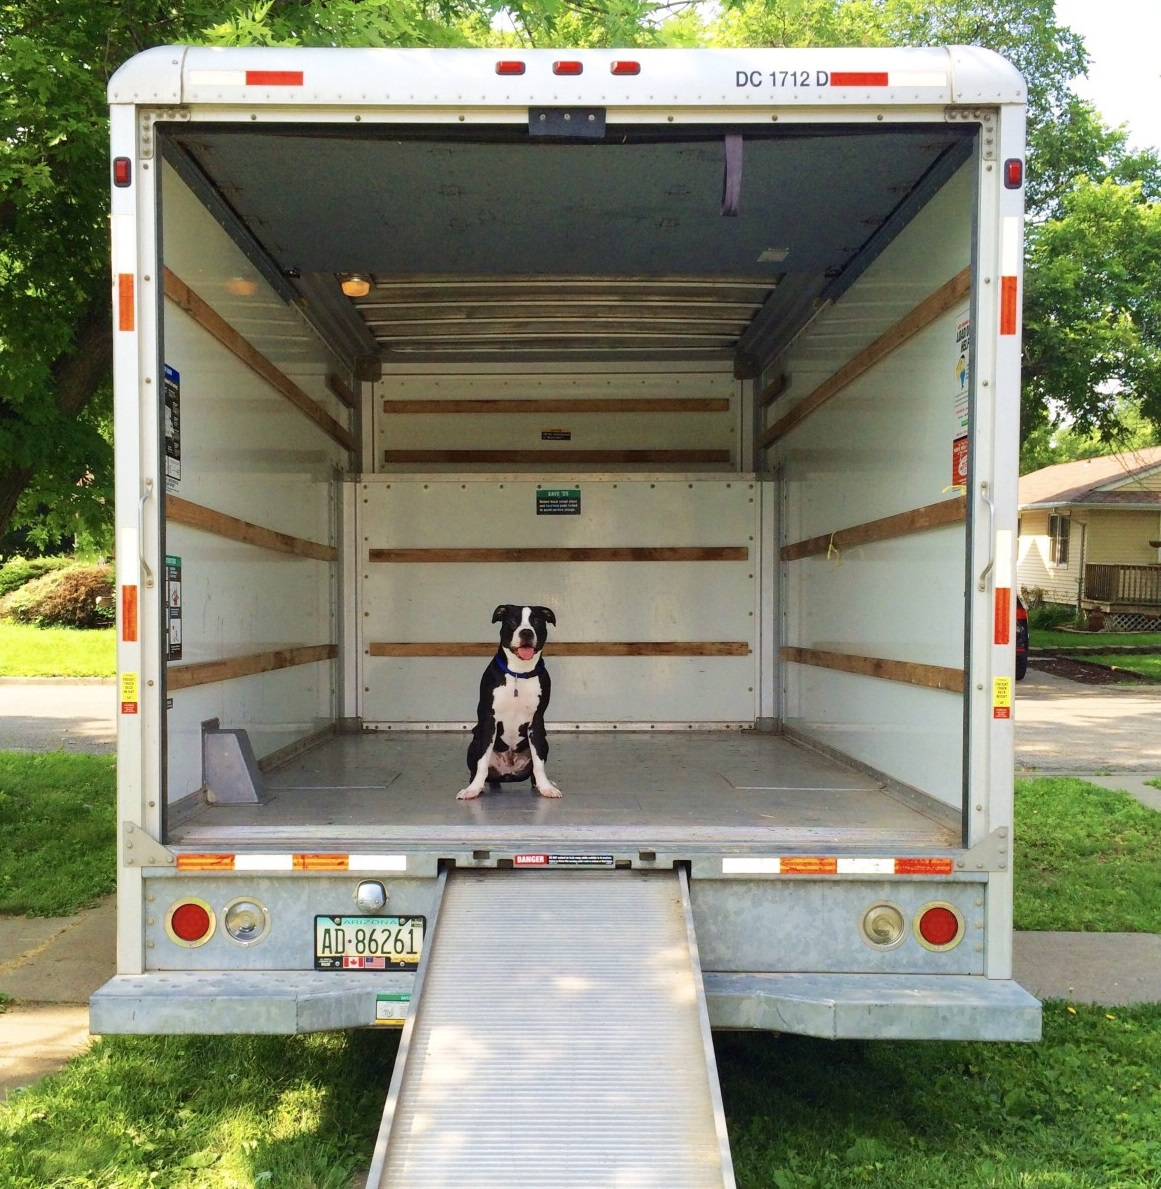 moving services to another country